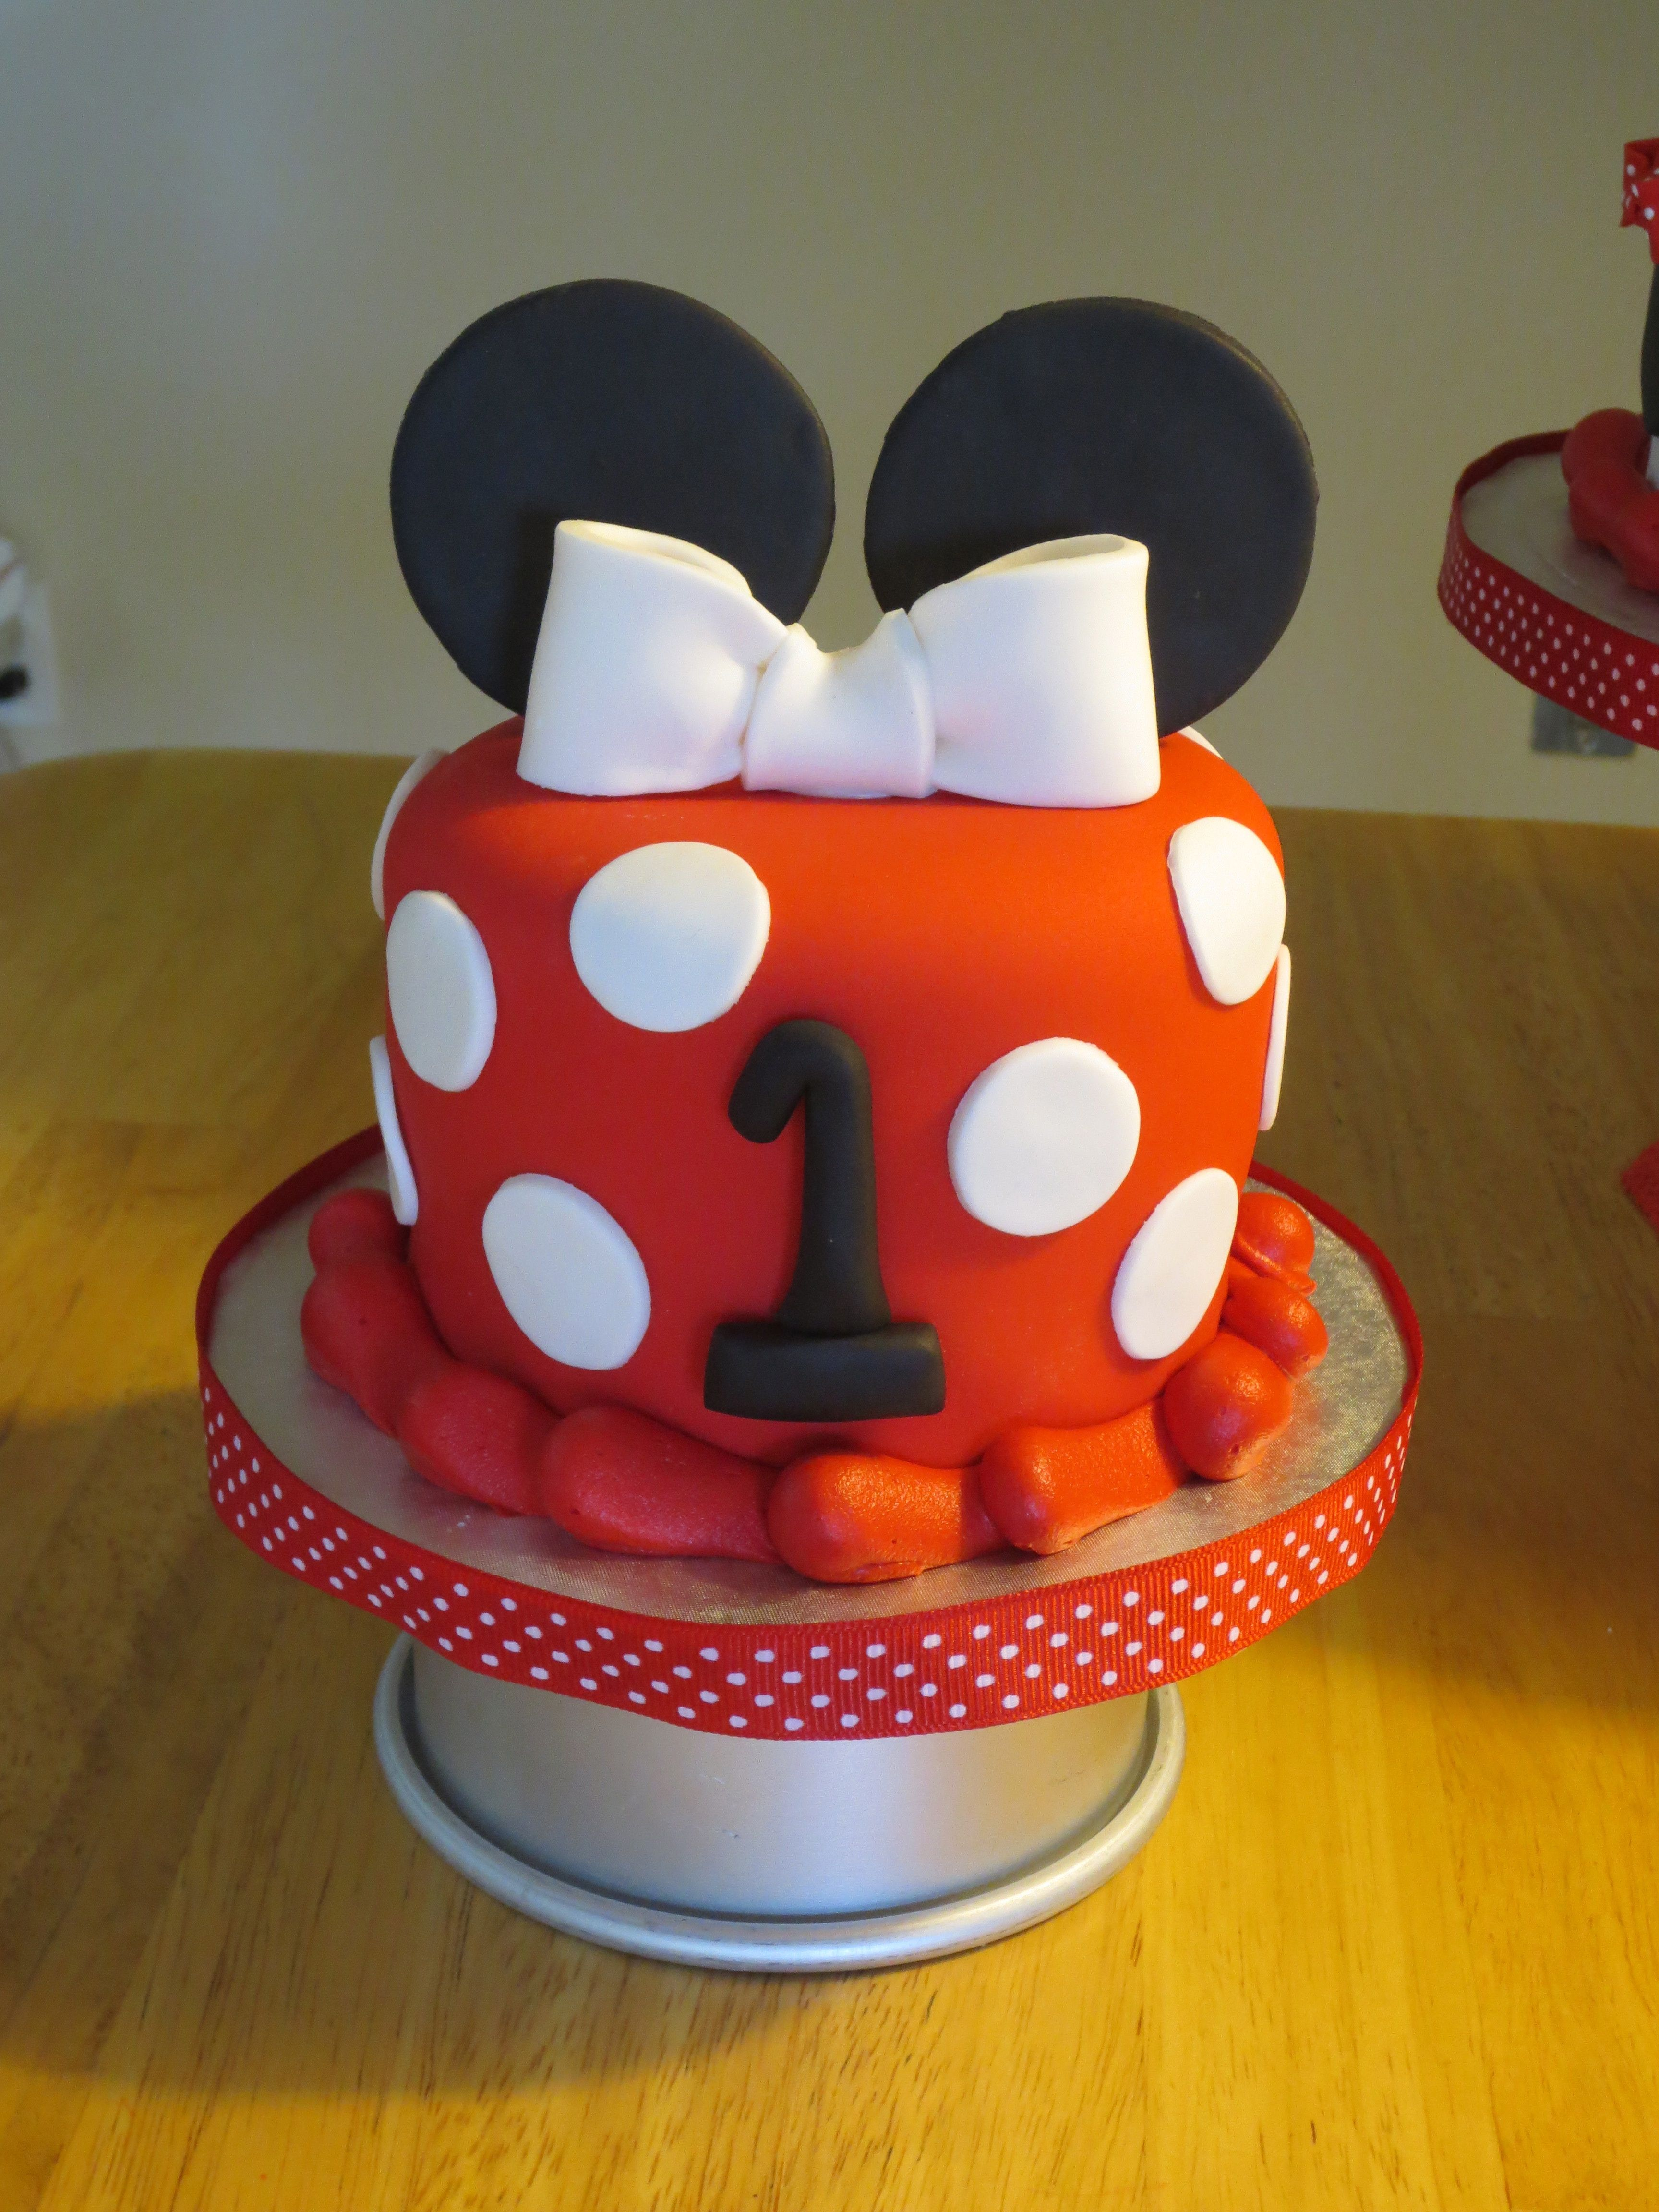 Minnie Mouse Cake And Smash Cake Whipped Frosting Smash Cakes - Easy fondant birthday cakes